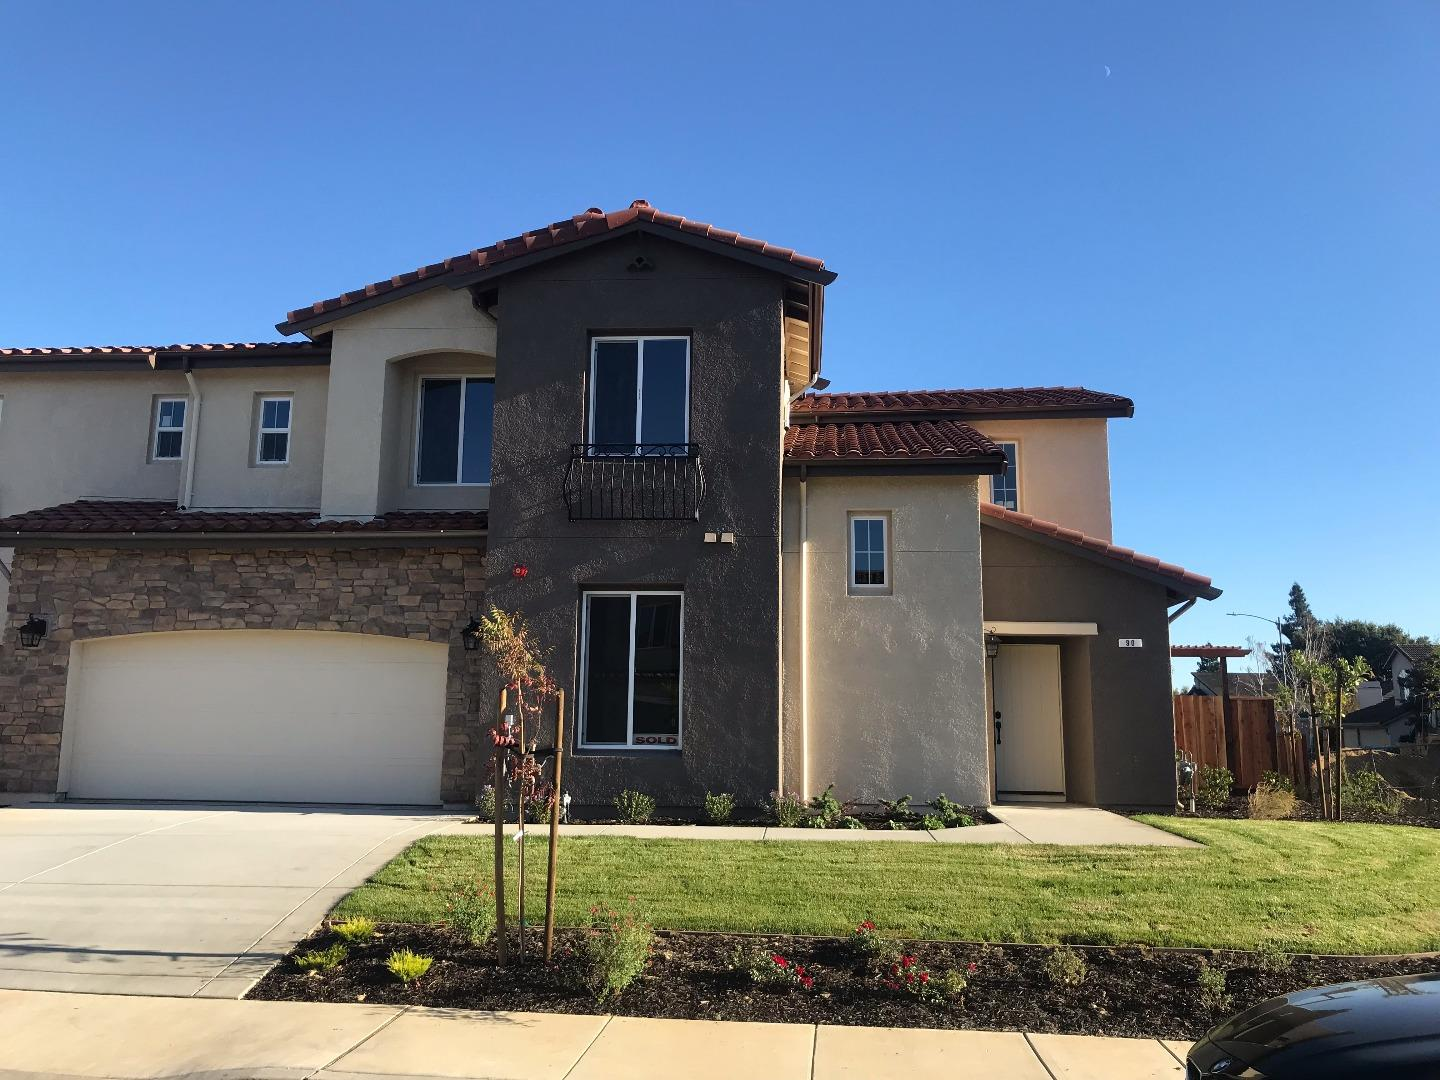 Single Family Home for Rent at 90 Paseo Madre Court 90 Paseo Madre Court Morgan Hill, California 95037 United States